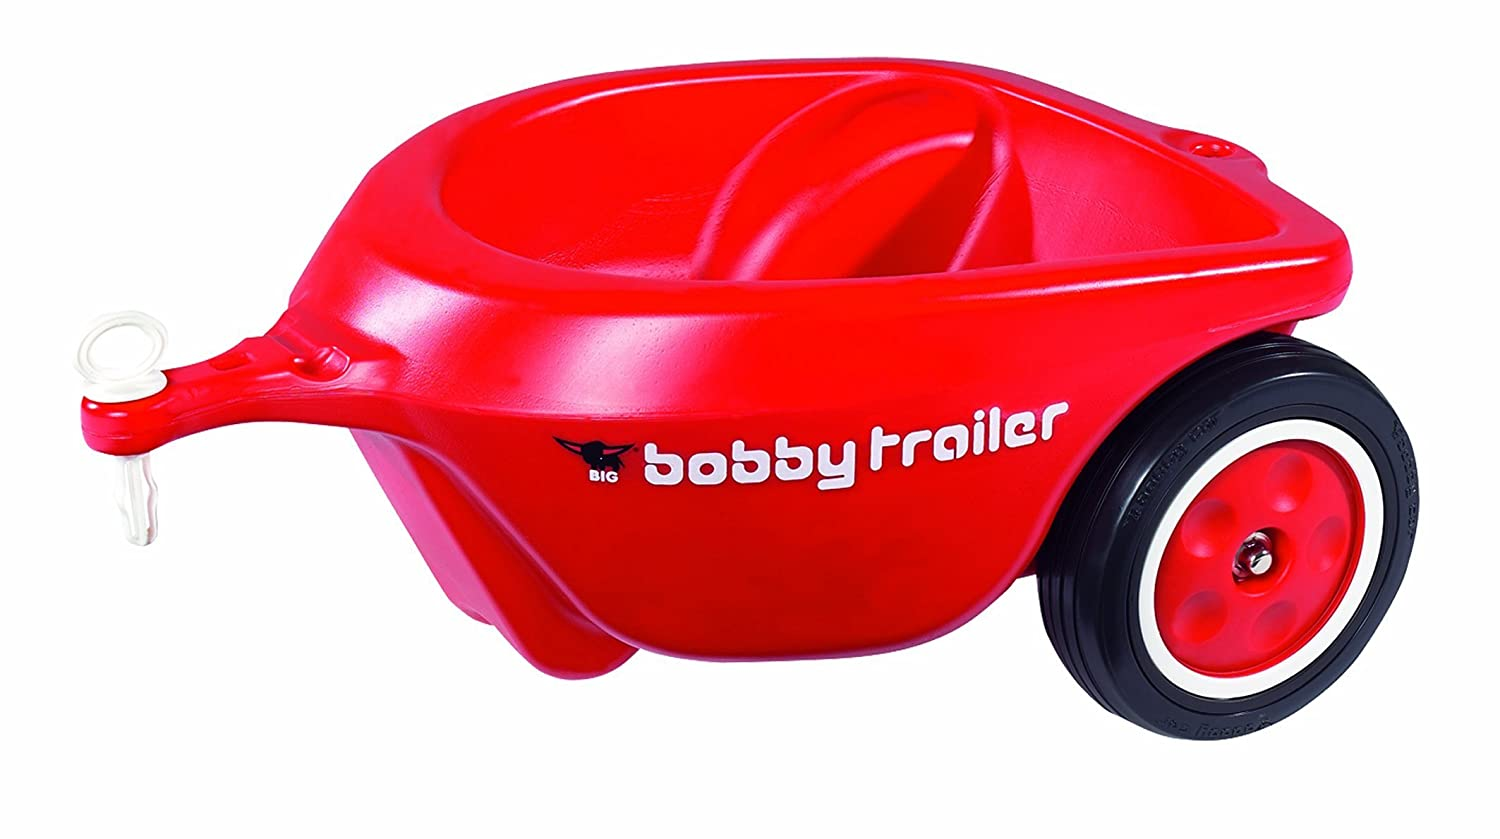 Bobby-Car Trailer